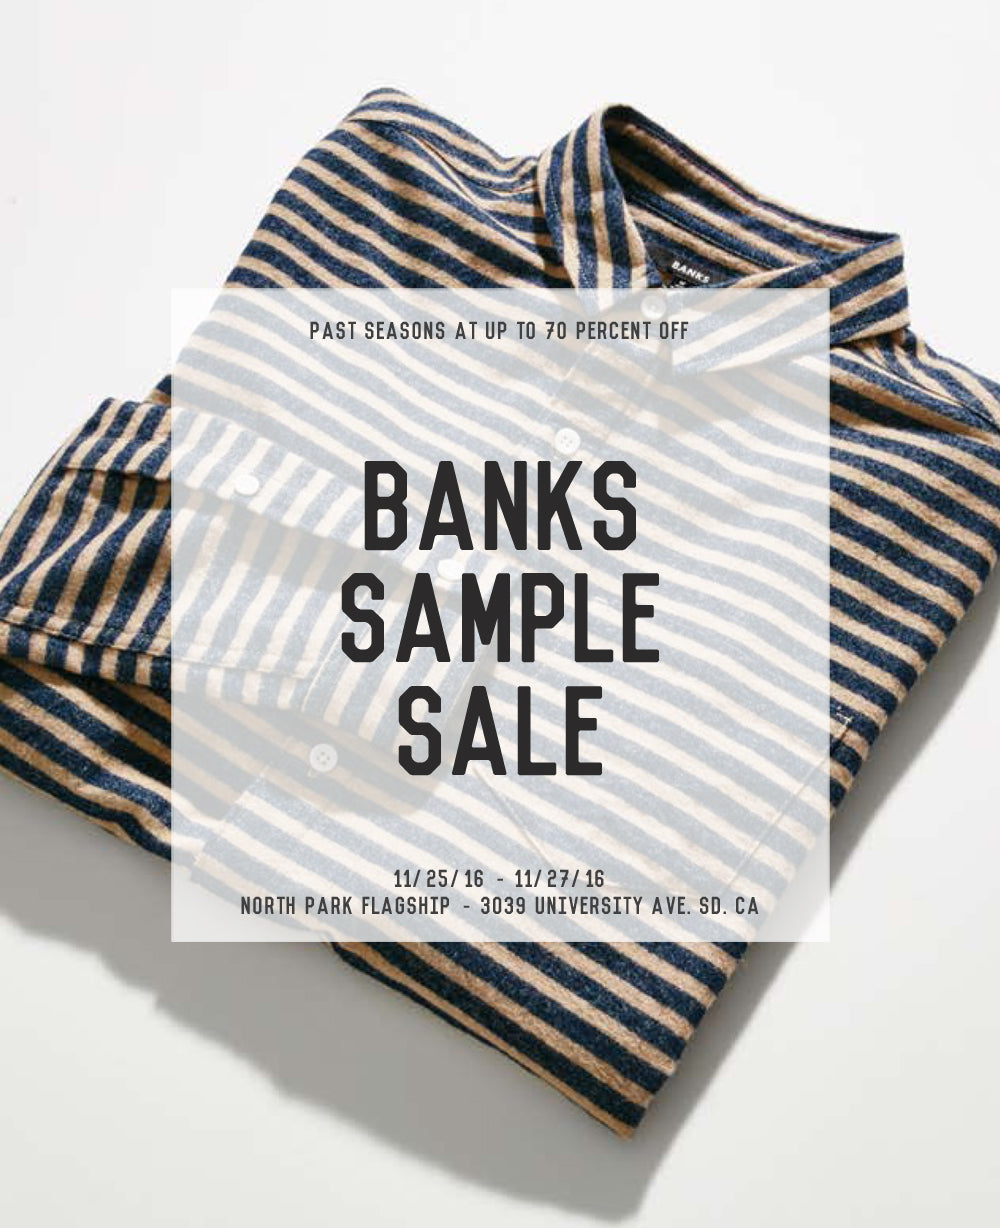 Banks Sample Sale